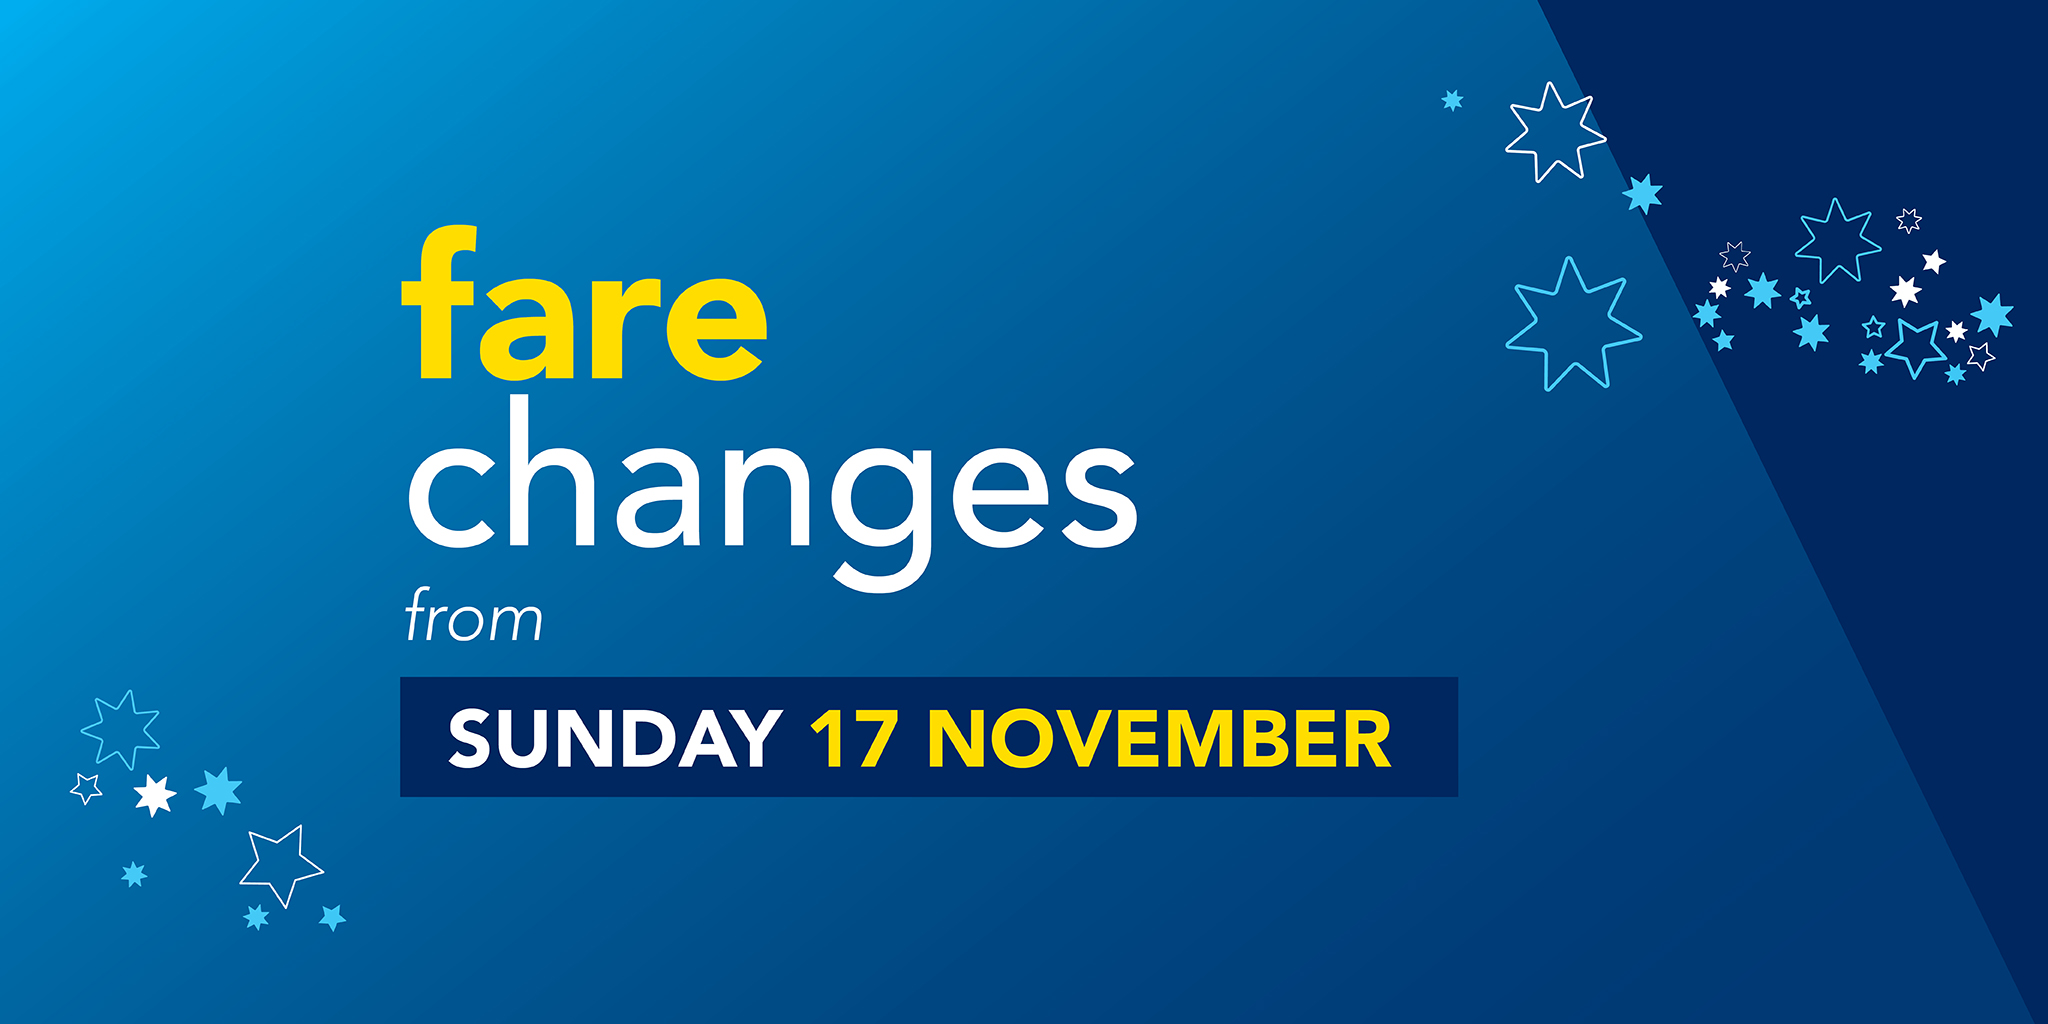 Fare changes from Sunday 17th November